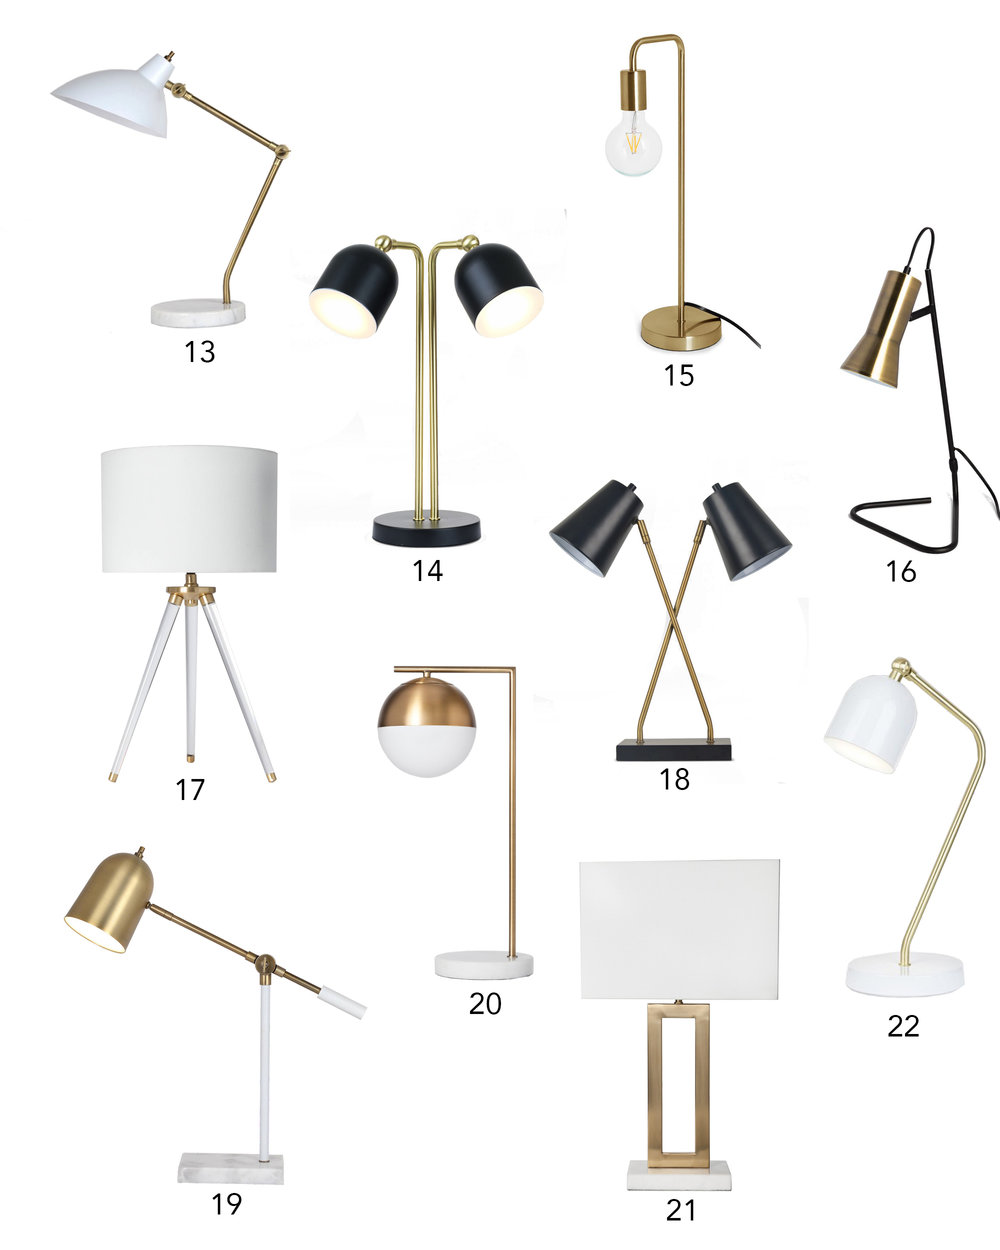 50 Stylish Lamps You Won't Believe Are Under $50 | Design Confetti